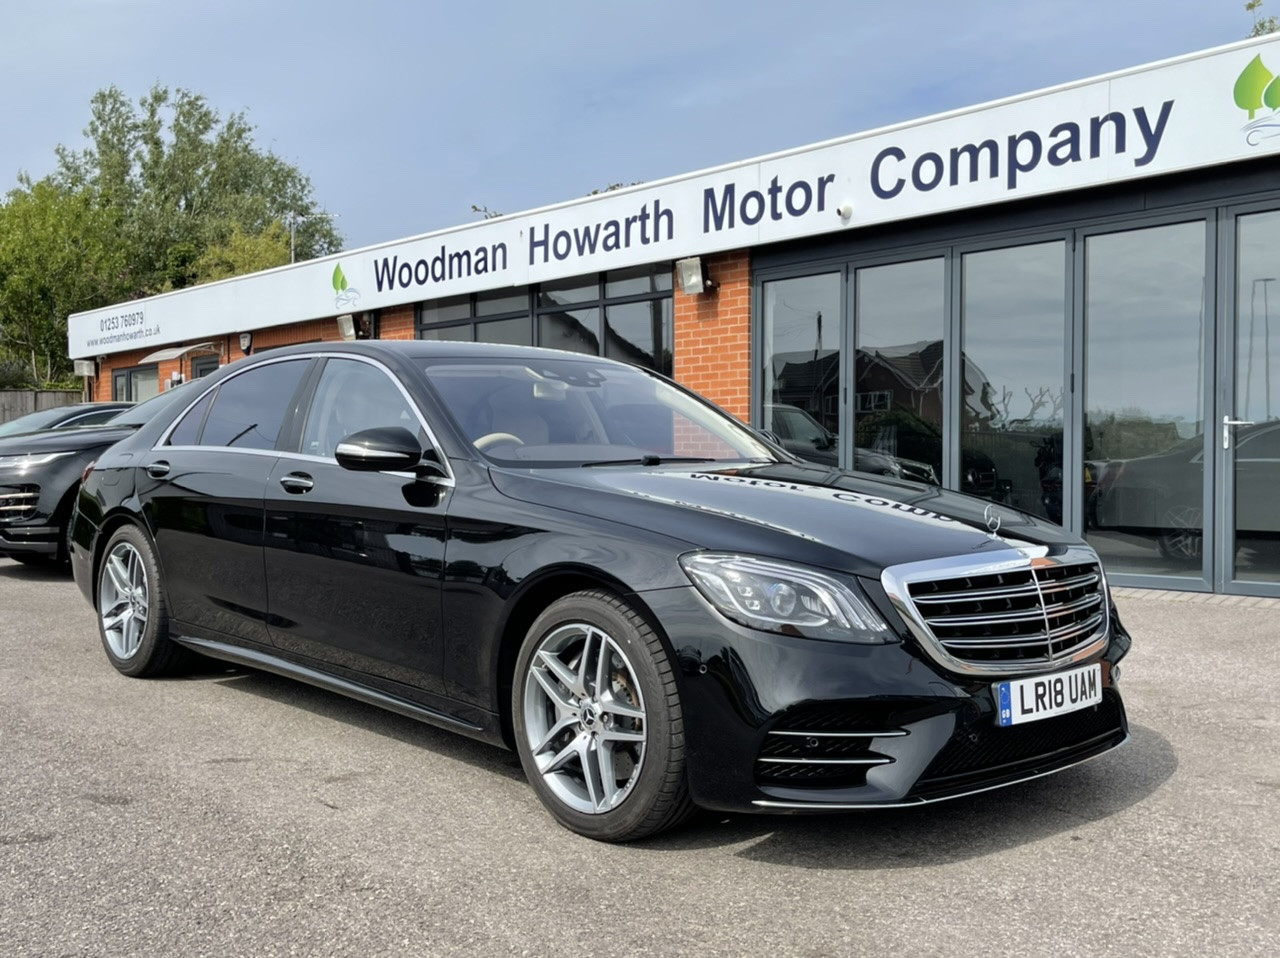 2018 18 MERCEDES BENZ S500L AMG LINE 9G-TRONIC AUTO - Only 2700 miles - £87k Cost new - Rare beige leather